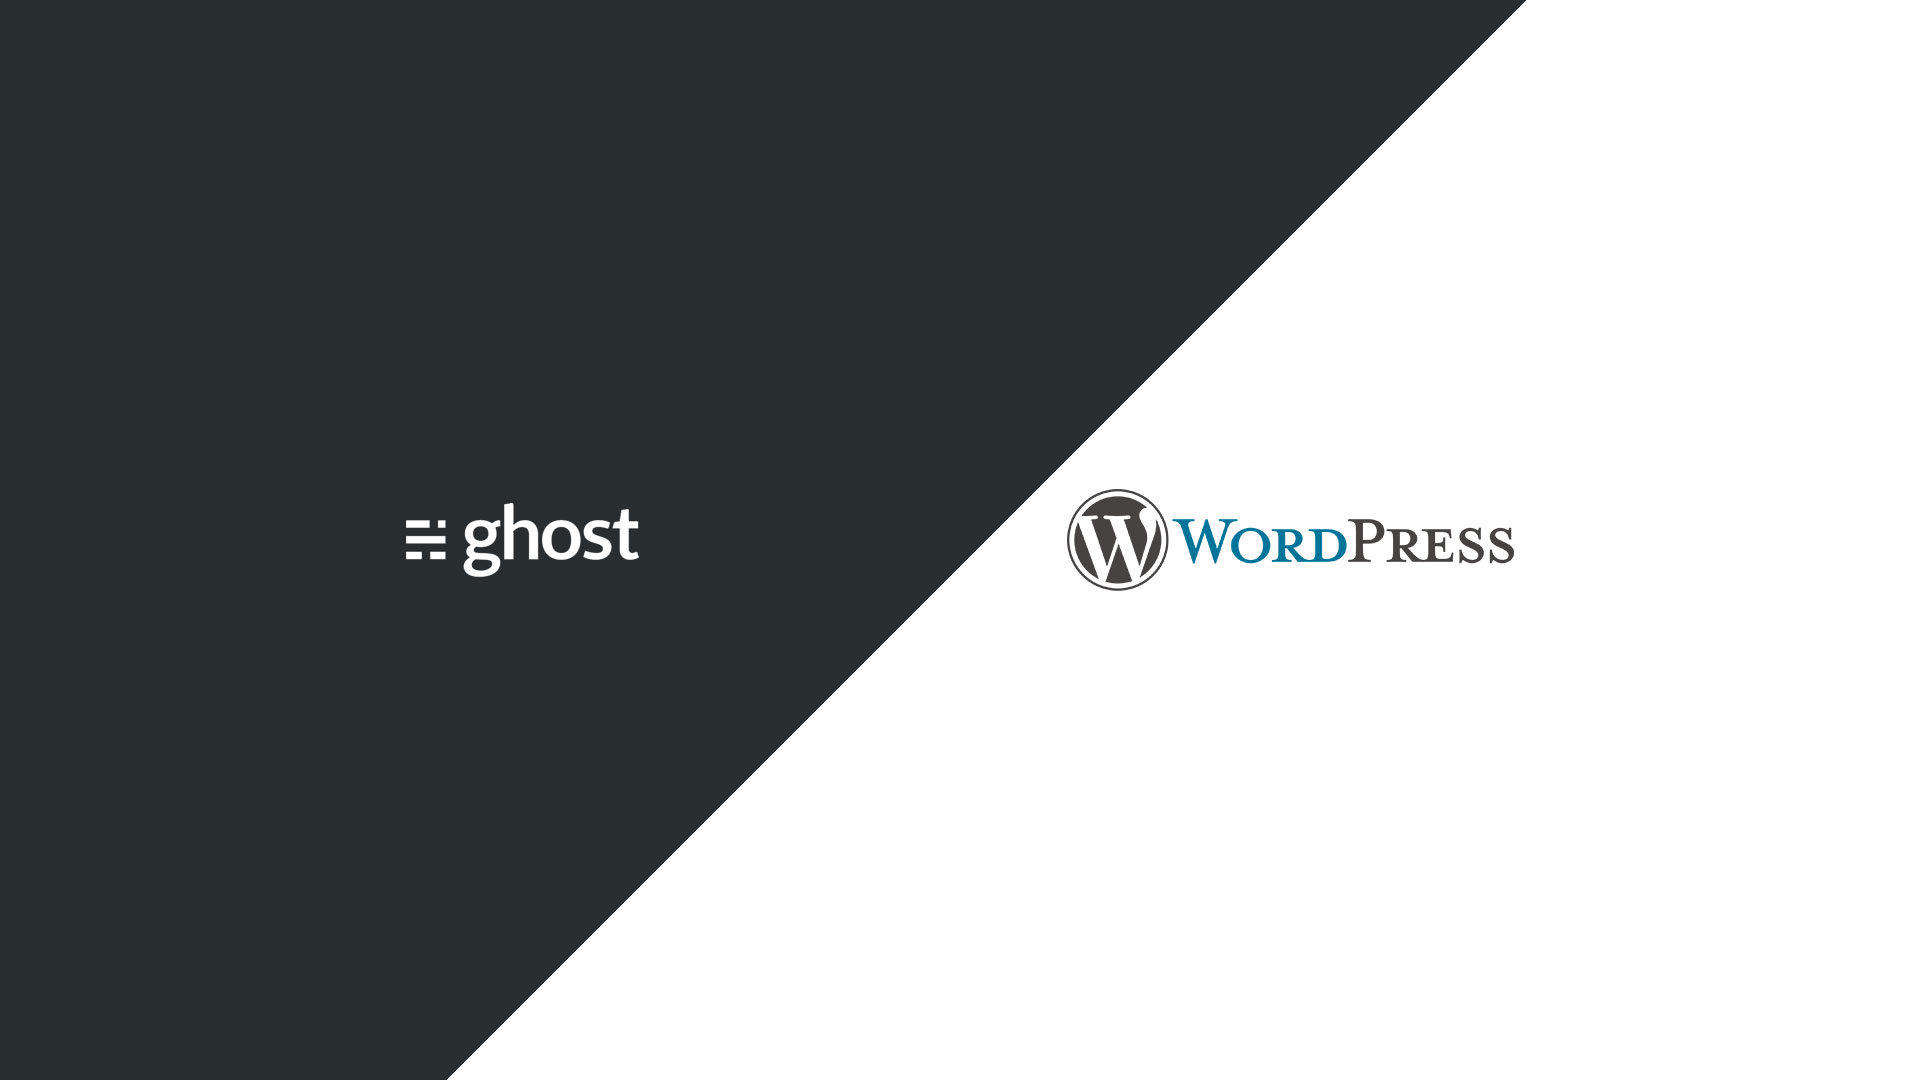 Why I Chose GhostJS Over Wordpress